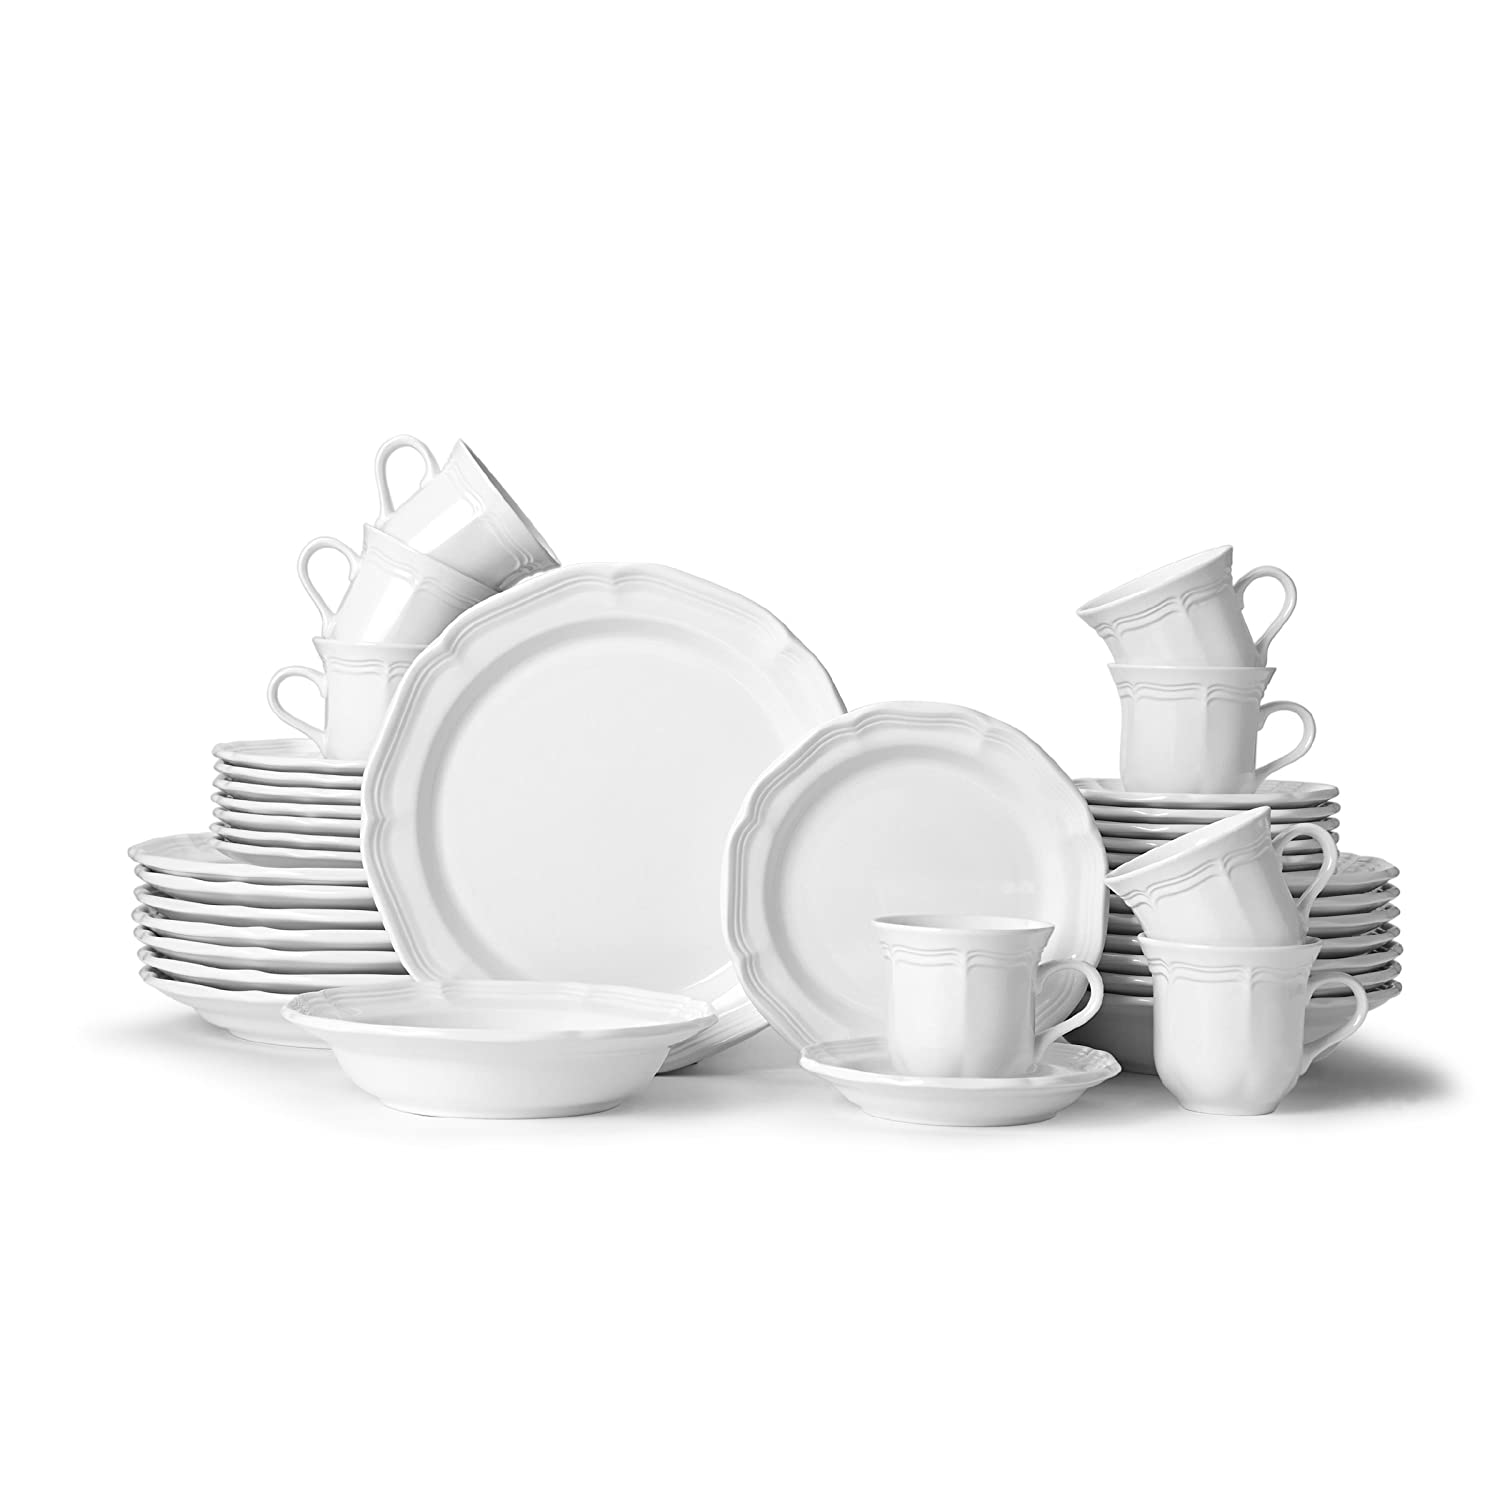 Amazon.com | Mikasa 5223387 French Countryside 40-Piece Dinnerware Set Service for 8 Dinnerware Sets  sc 1 st  Amazon.com & Amazon.com | Mikasa 5223387 French Countryside 40-Piece Dinnerware ...